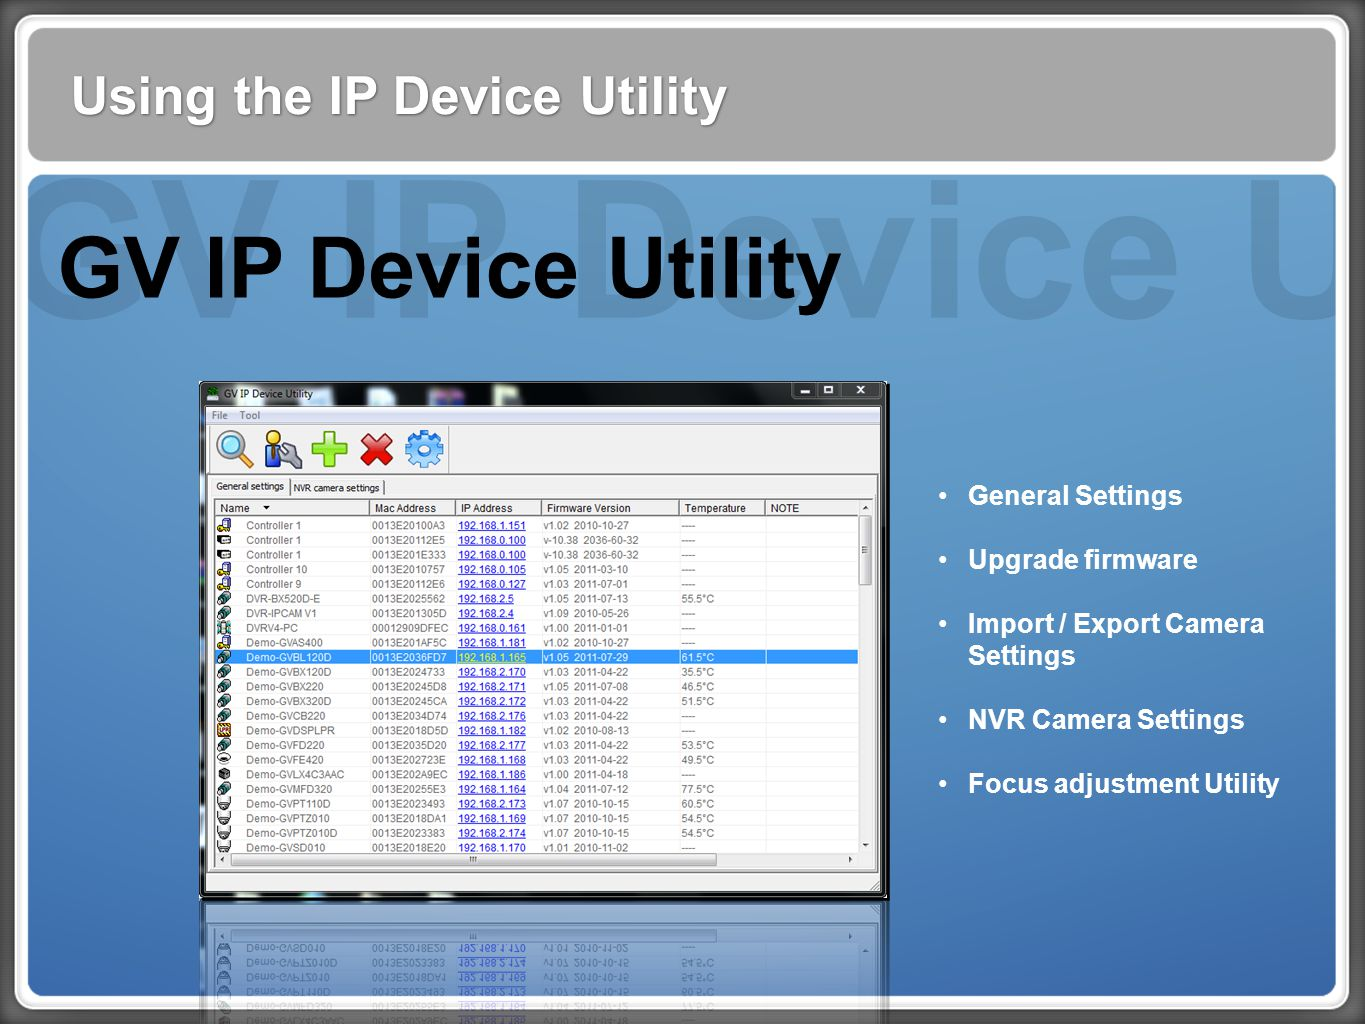 GV IP Device Utility Using the IP Device Utility GV IP Device Utility General Settings Upgrade firmware Import / Export Camera Settings NVR Camera Settings Focus adjustment Utility